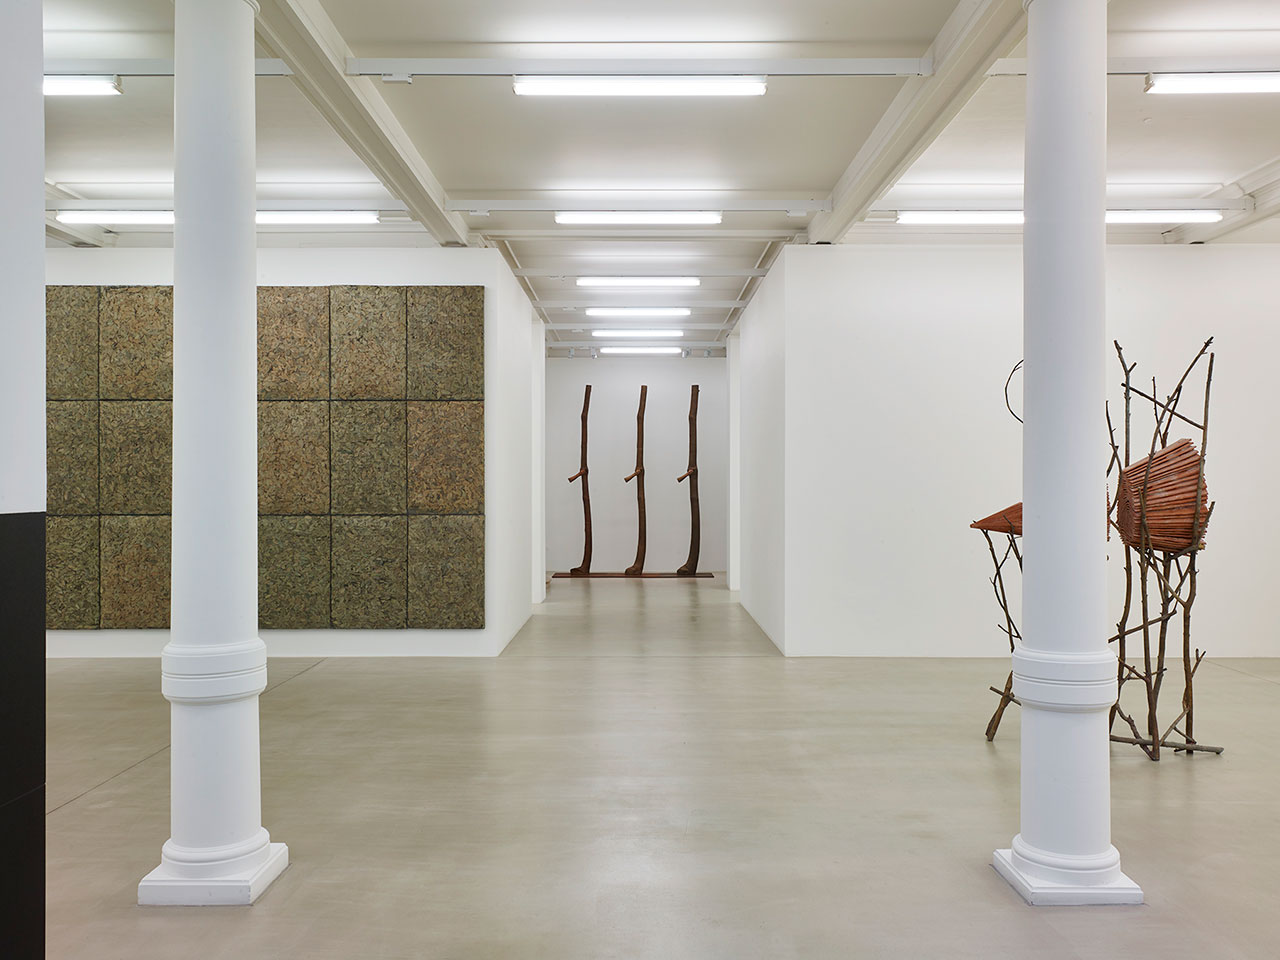 Giuseppe Penone, Fui, Saró, Non Sono (I was, I will be, I am not). Installation view from Marian Goodman Gallery London. Courtesy the artist and Marian Goodman Gallery.